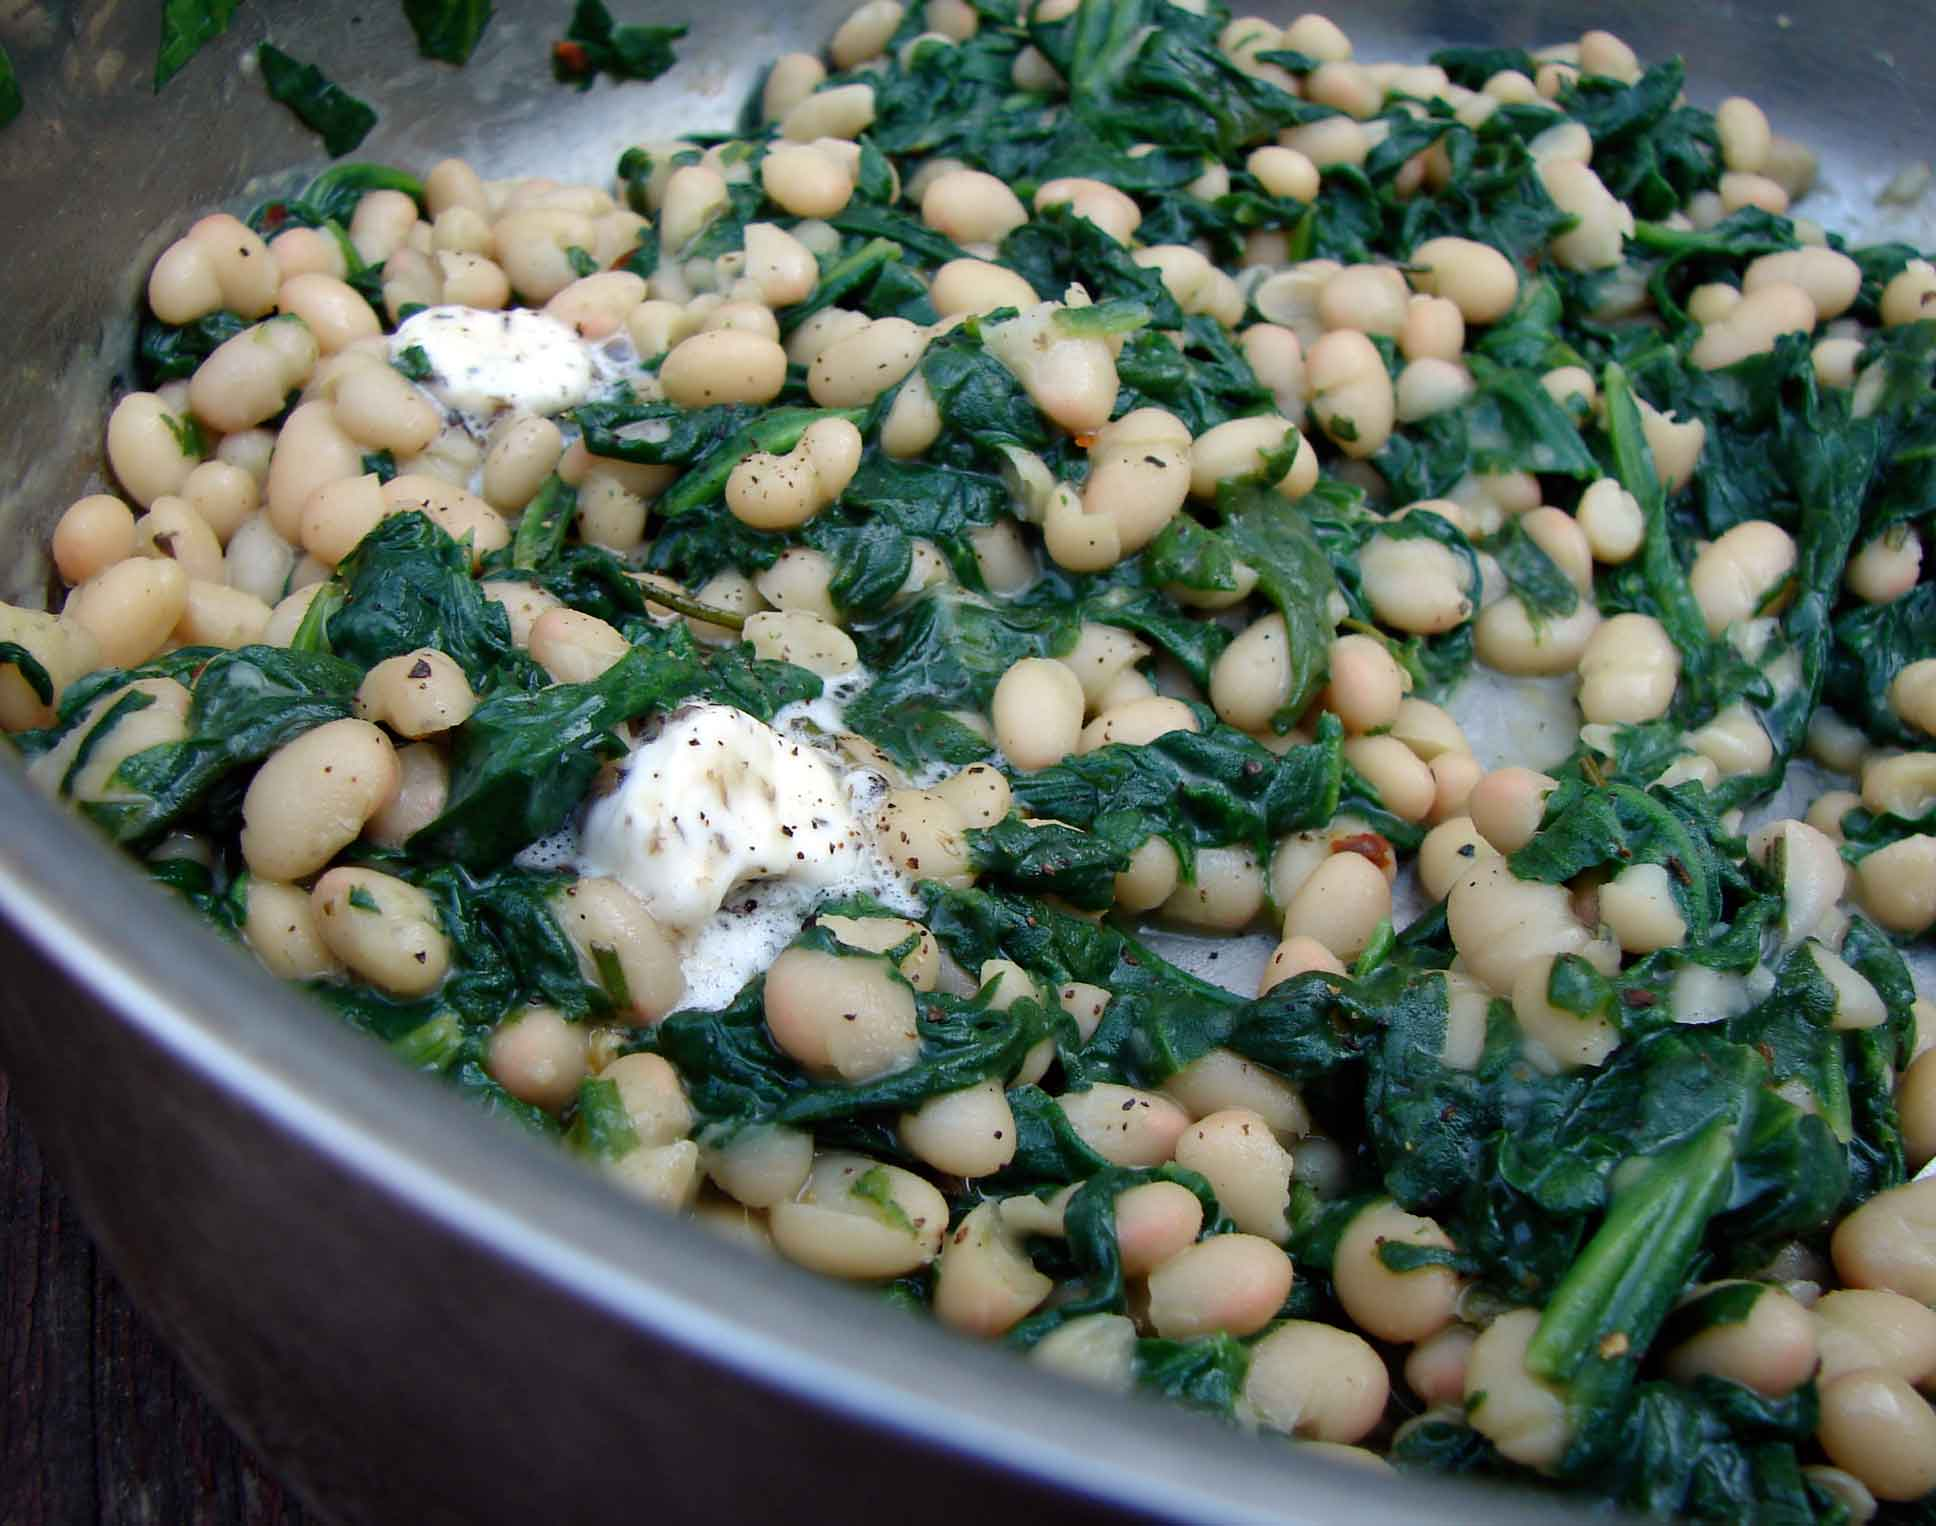 Sauteed Spinach With White Beans And Pine Nuts Recipes — Dishmaps